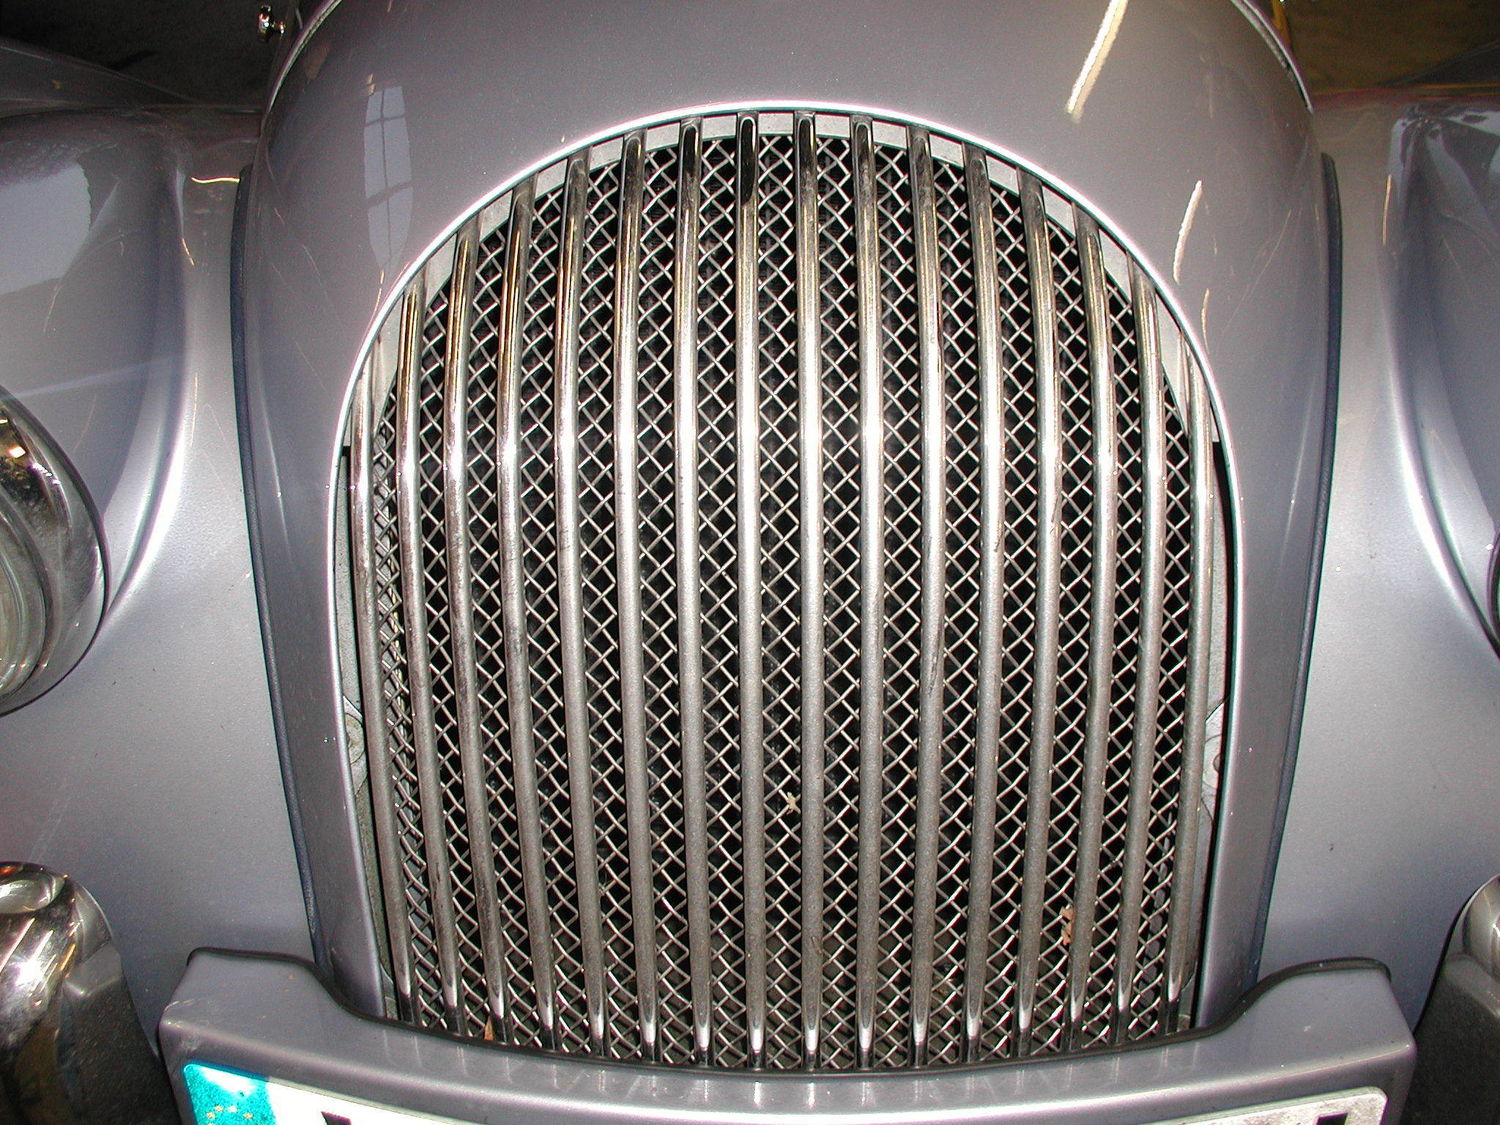 Radiator Mesh Grille - Stainless